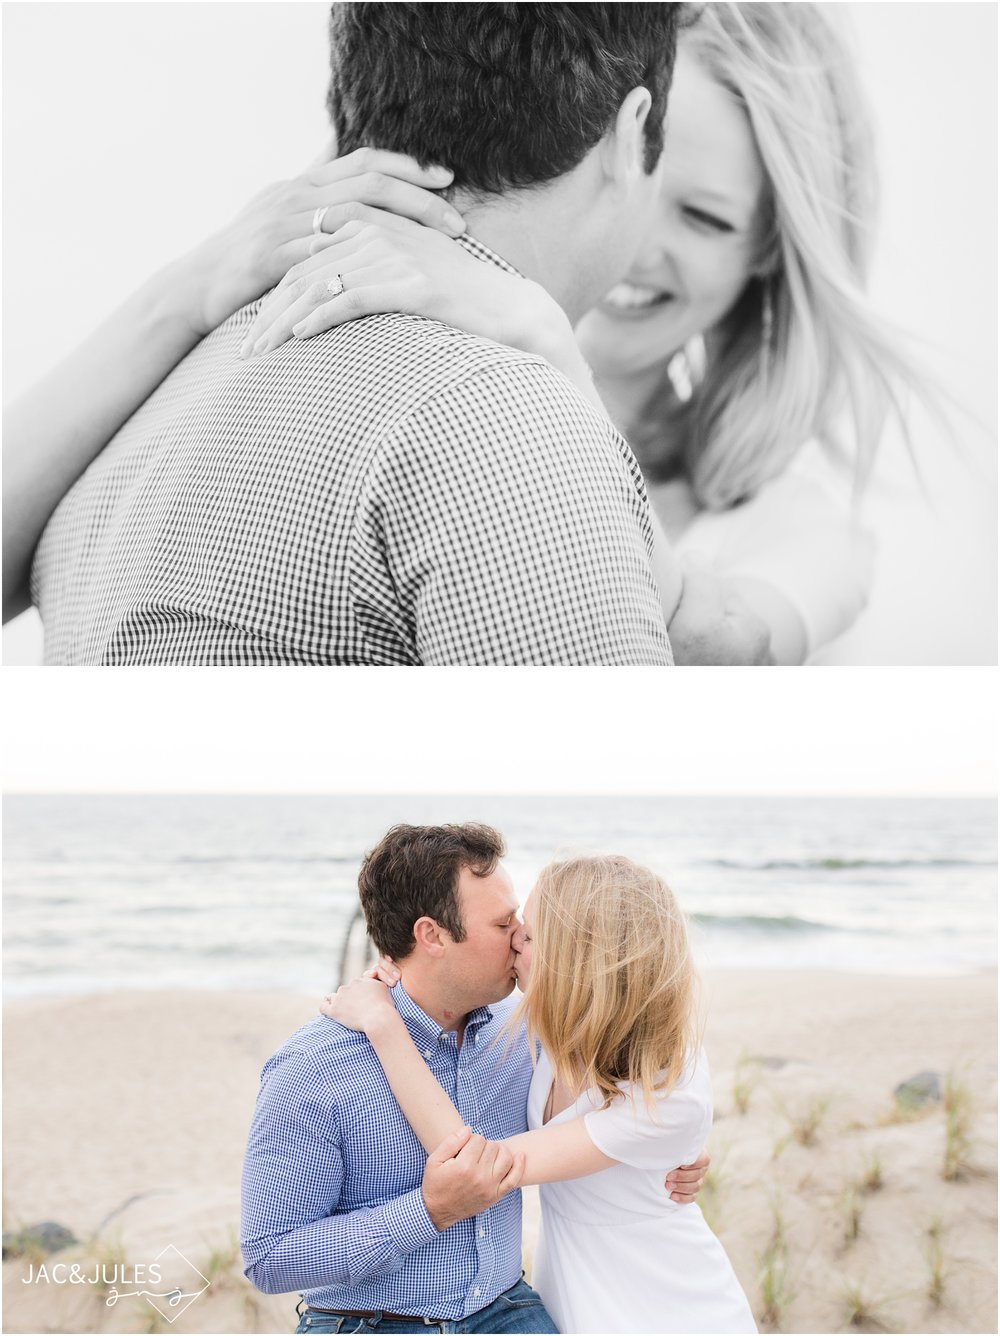 Engagement photos on the beach in Bay Head, NJ.